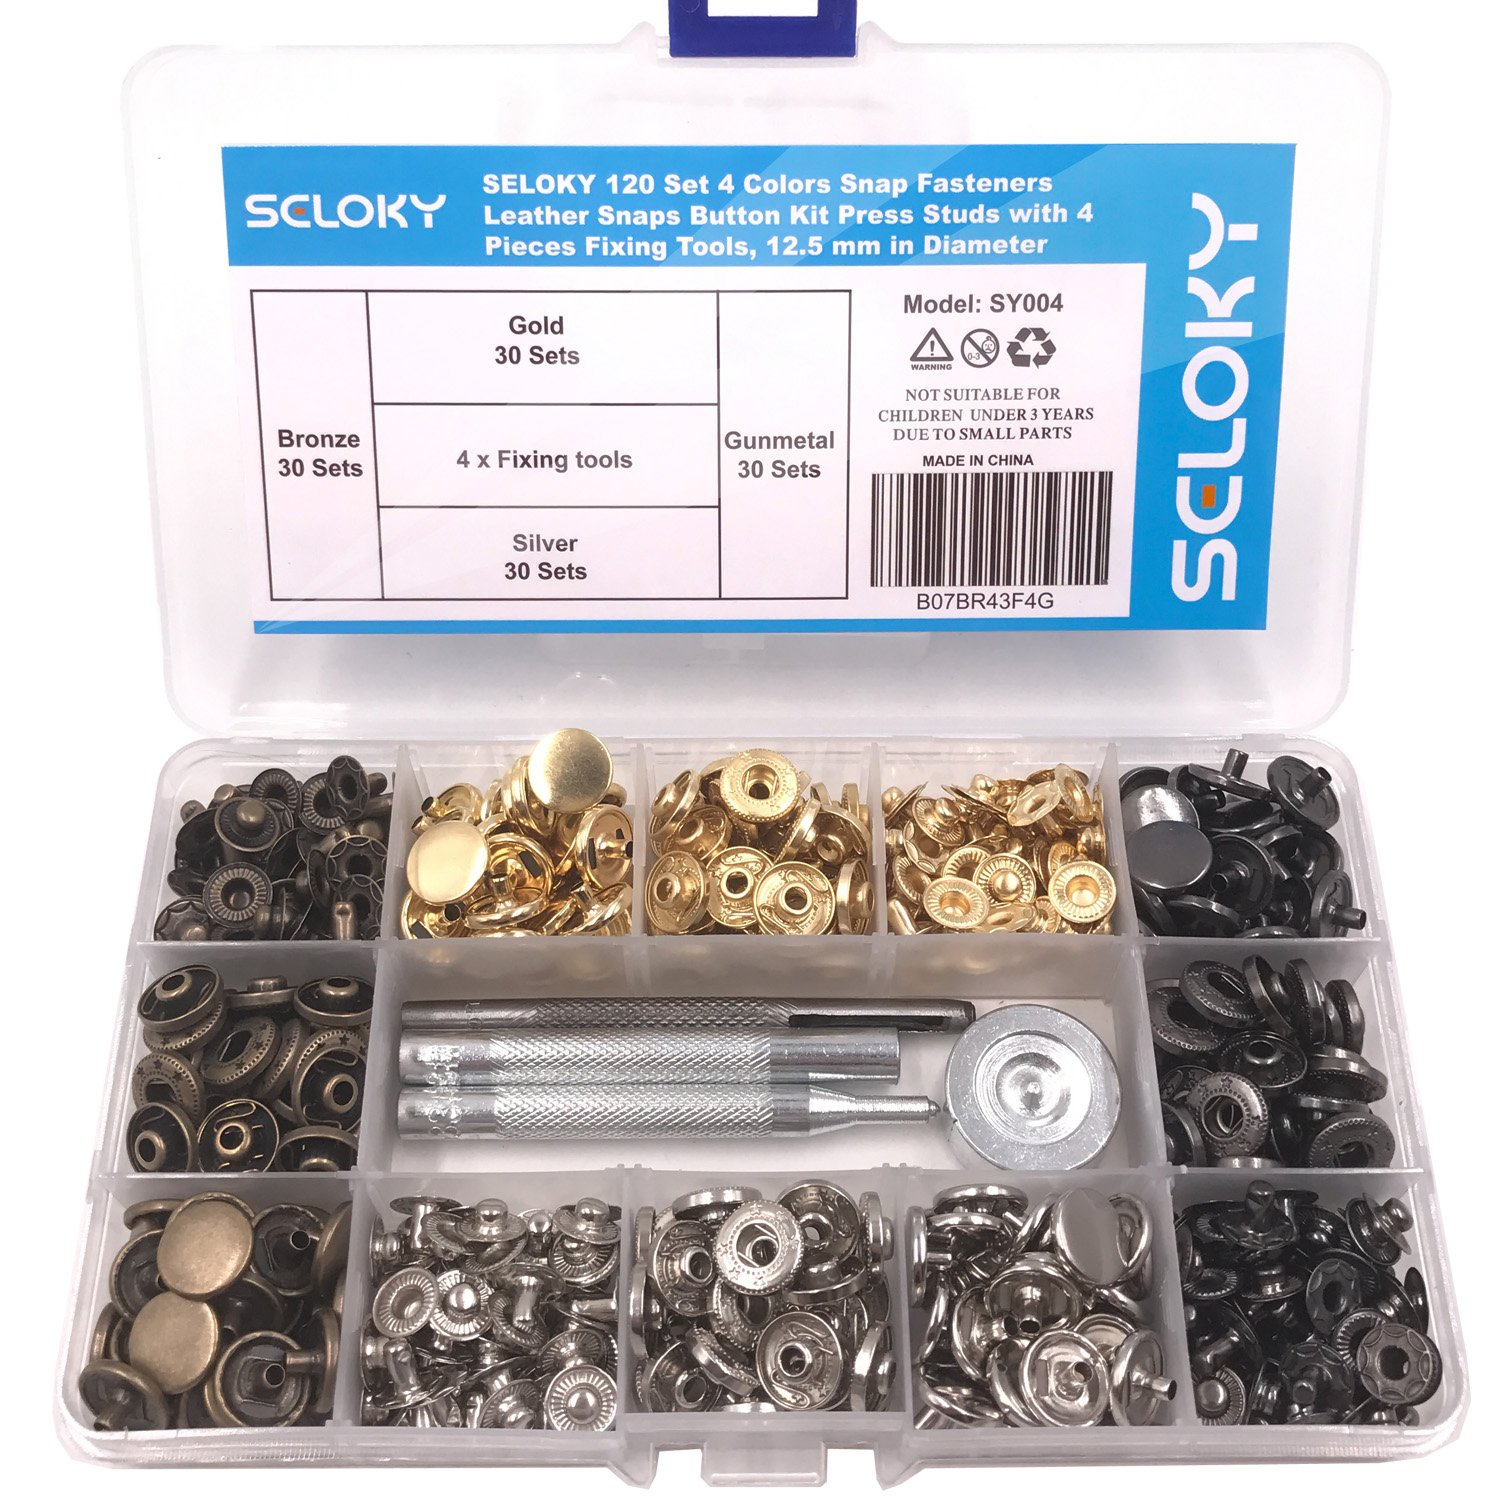 Seloky 120 Set 4 Colors Snap Fasteners Leather Snaps Button Kit Press Studs with 4 Pieces Fixing Tools, 12.5 mm in Diameter 4337005979